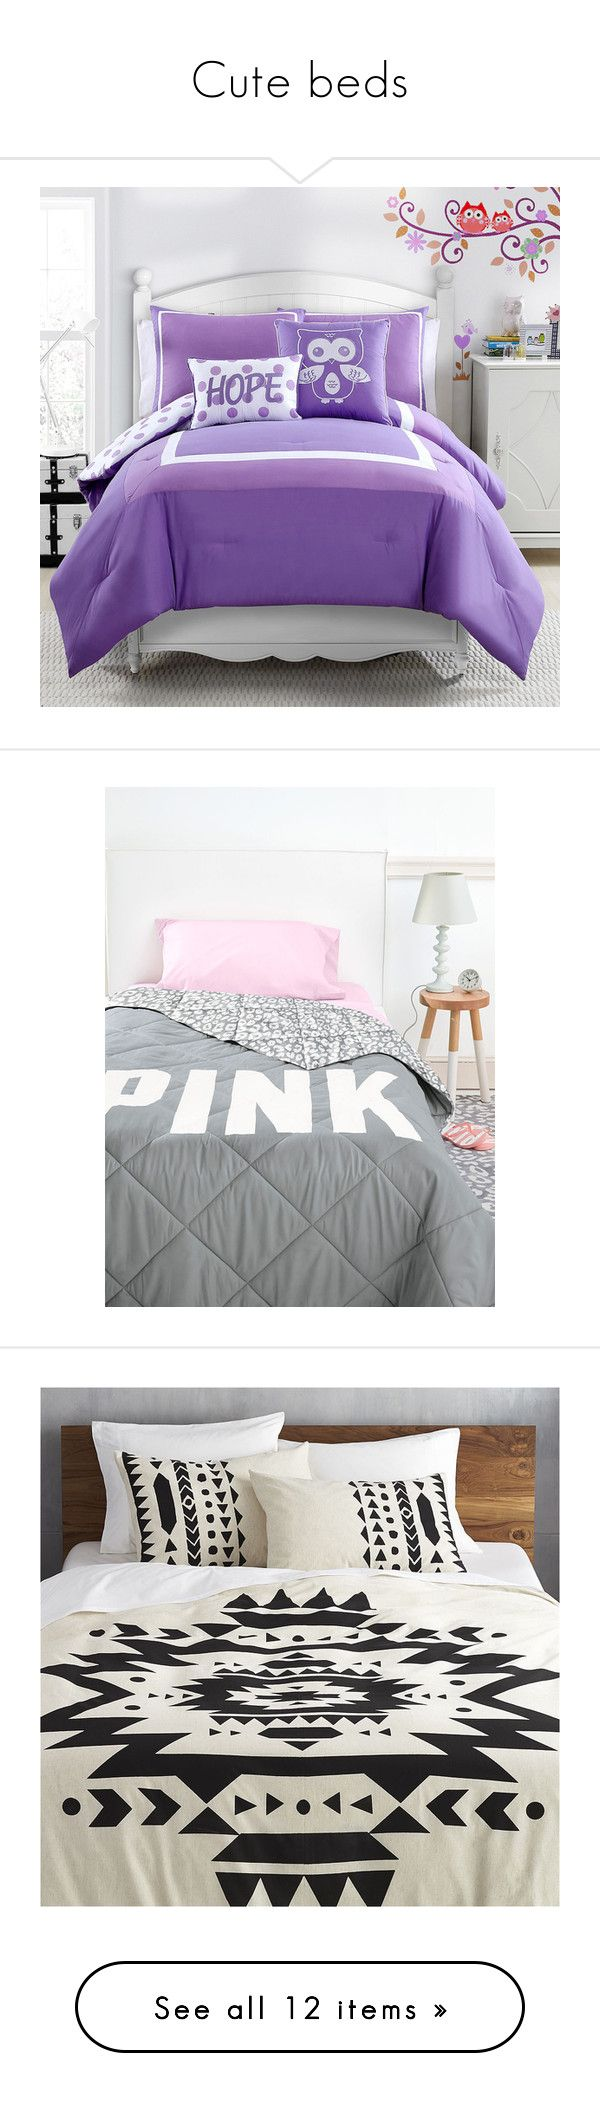 Twin bedding guest room -  Cute Beds By Nelson Iv Liked On Polyvore Featuring Home Bed